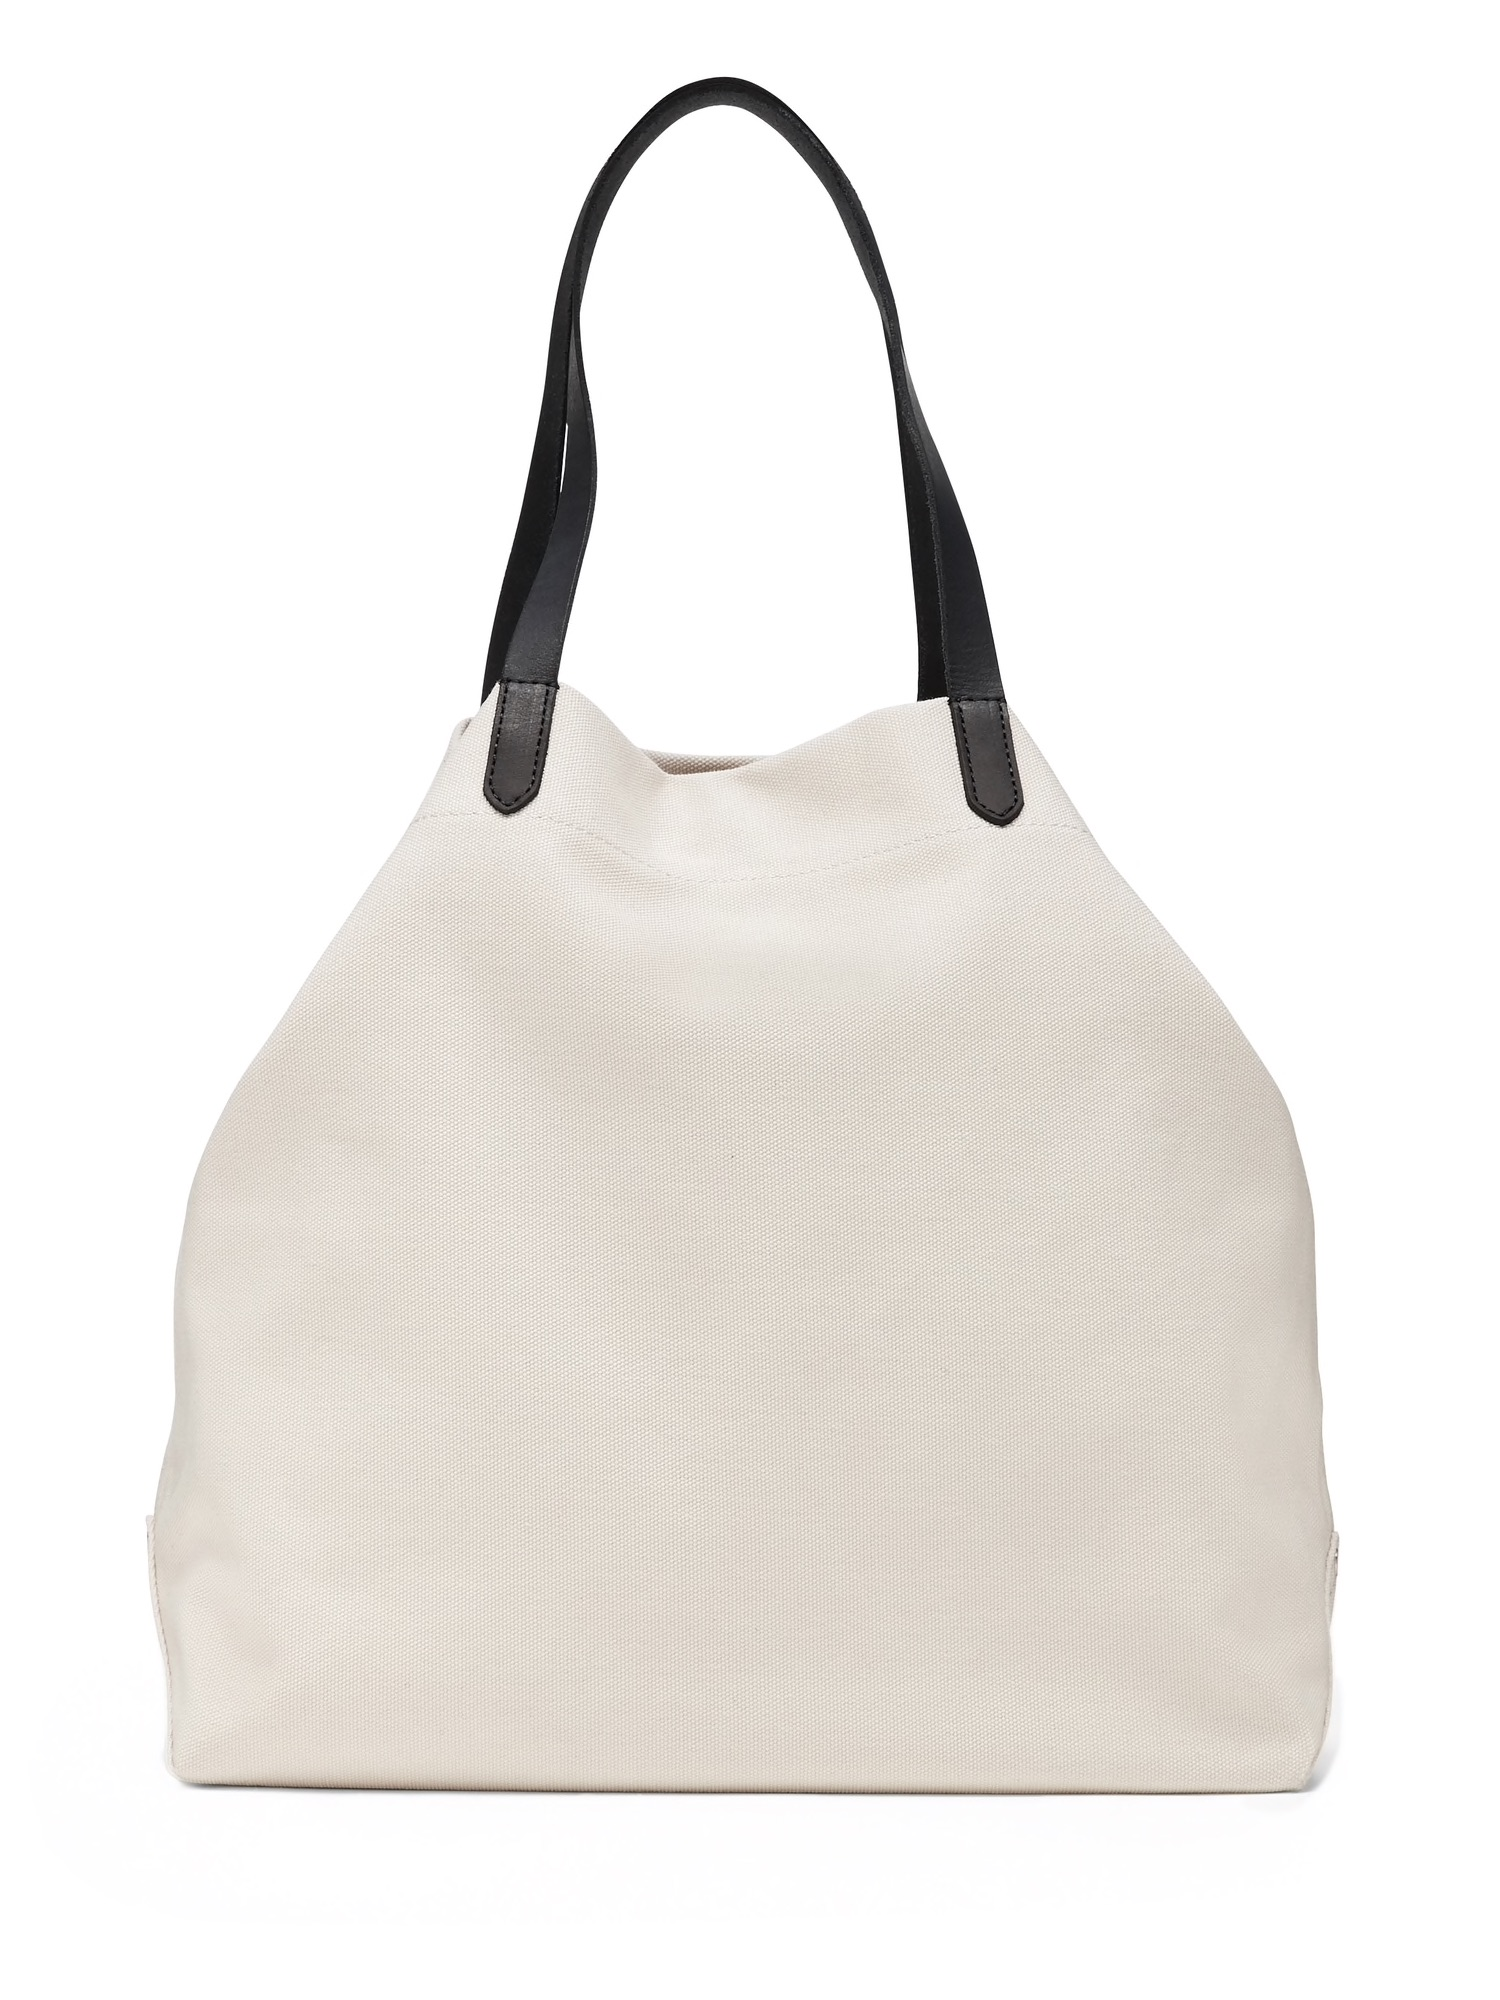 The Canvas Carryall